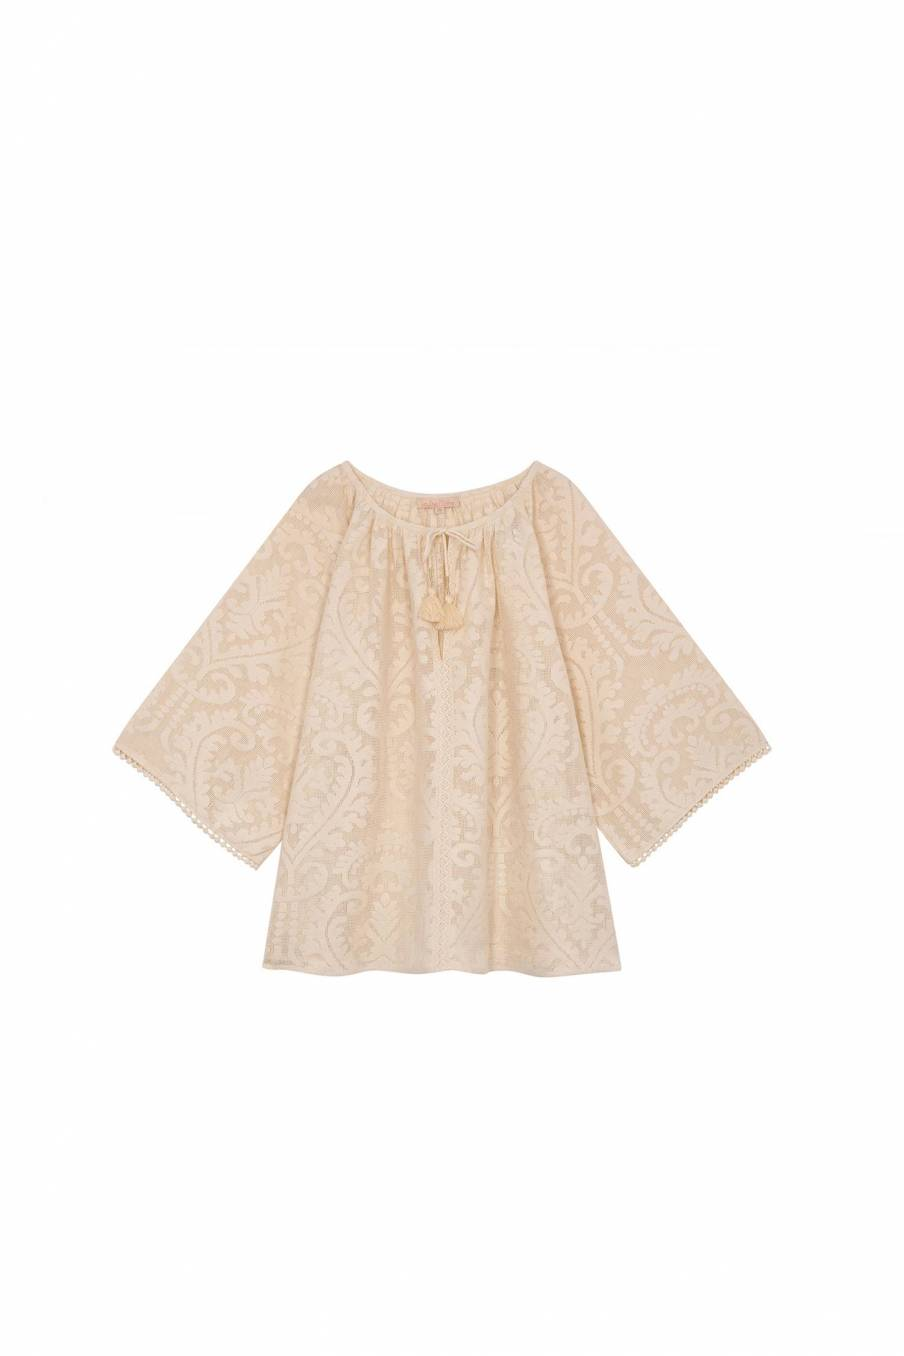 Blouse Maribel Cream Baroque Lace